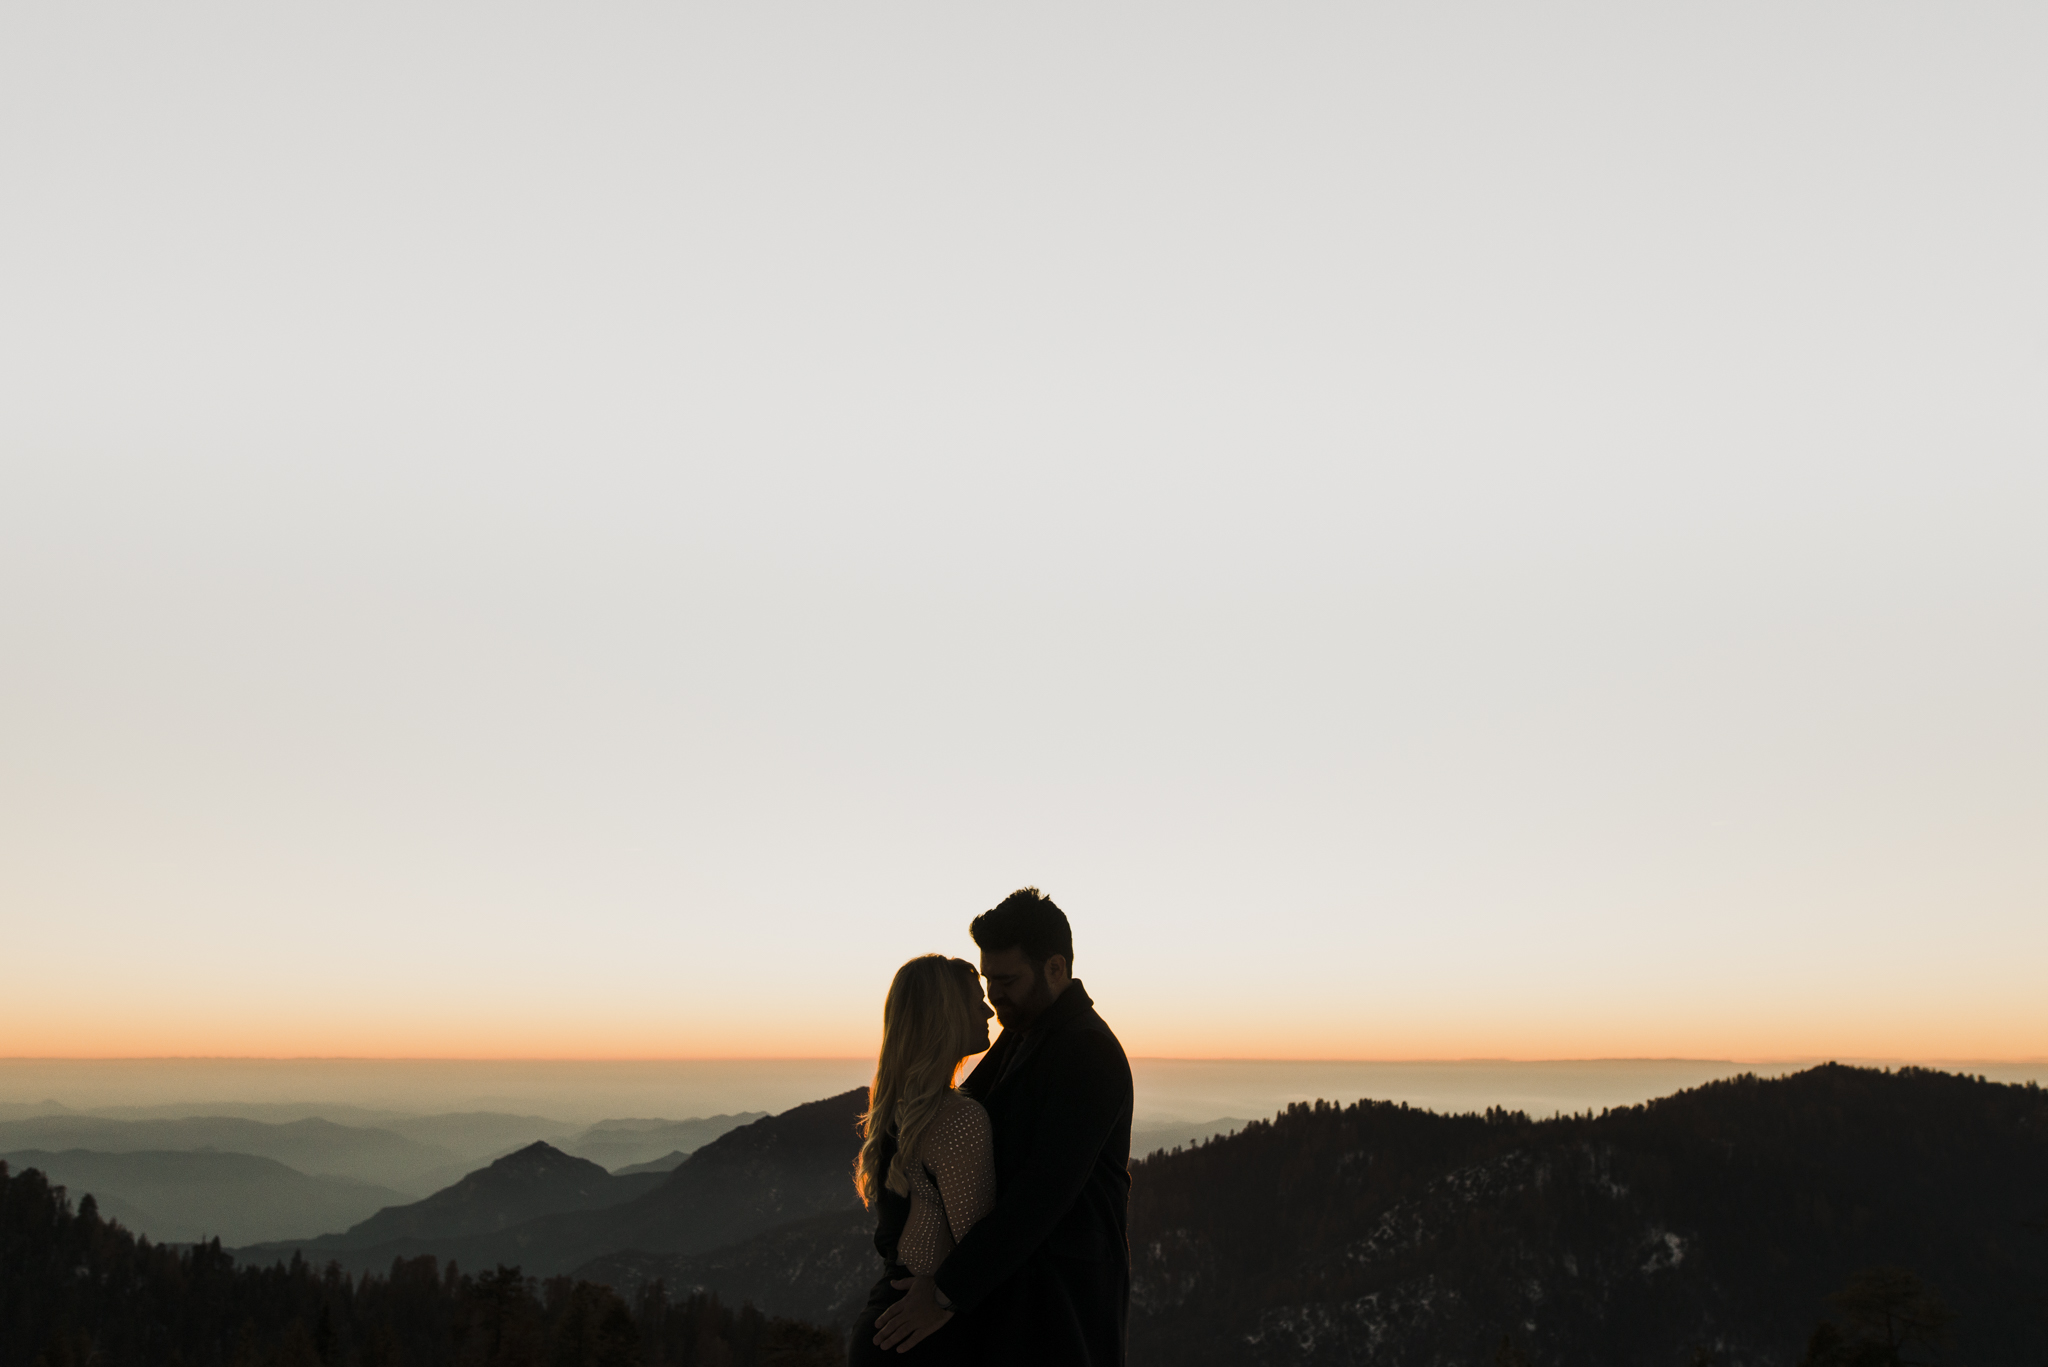 ©Isaiah-&-Taylor-Photography---George-&-Alyssa-Engagement---Sequoia-National-Park,-California-180.jpg